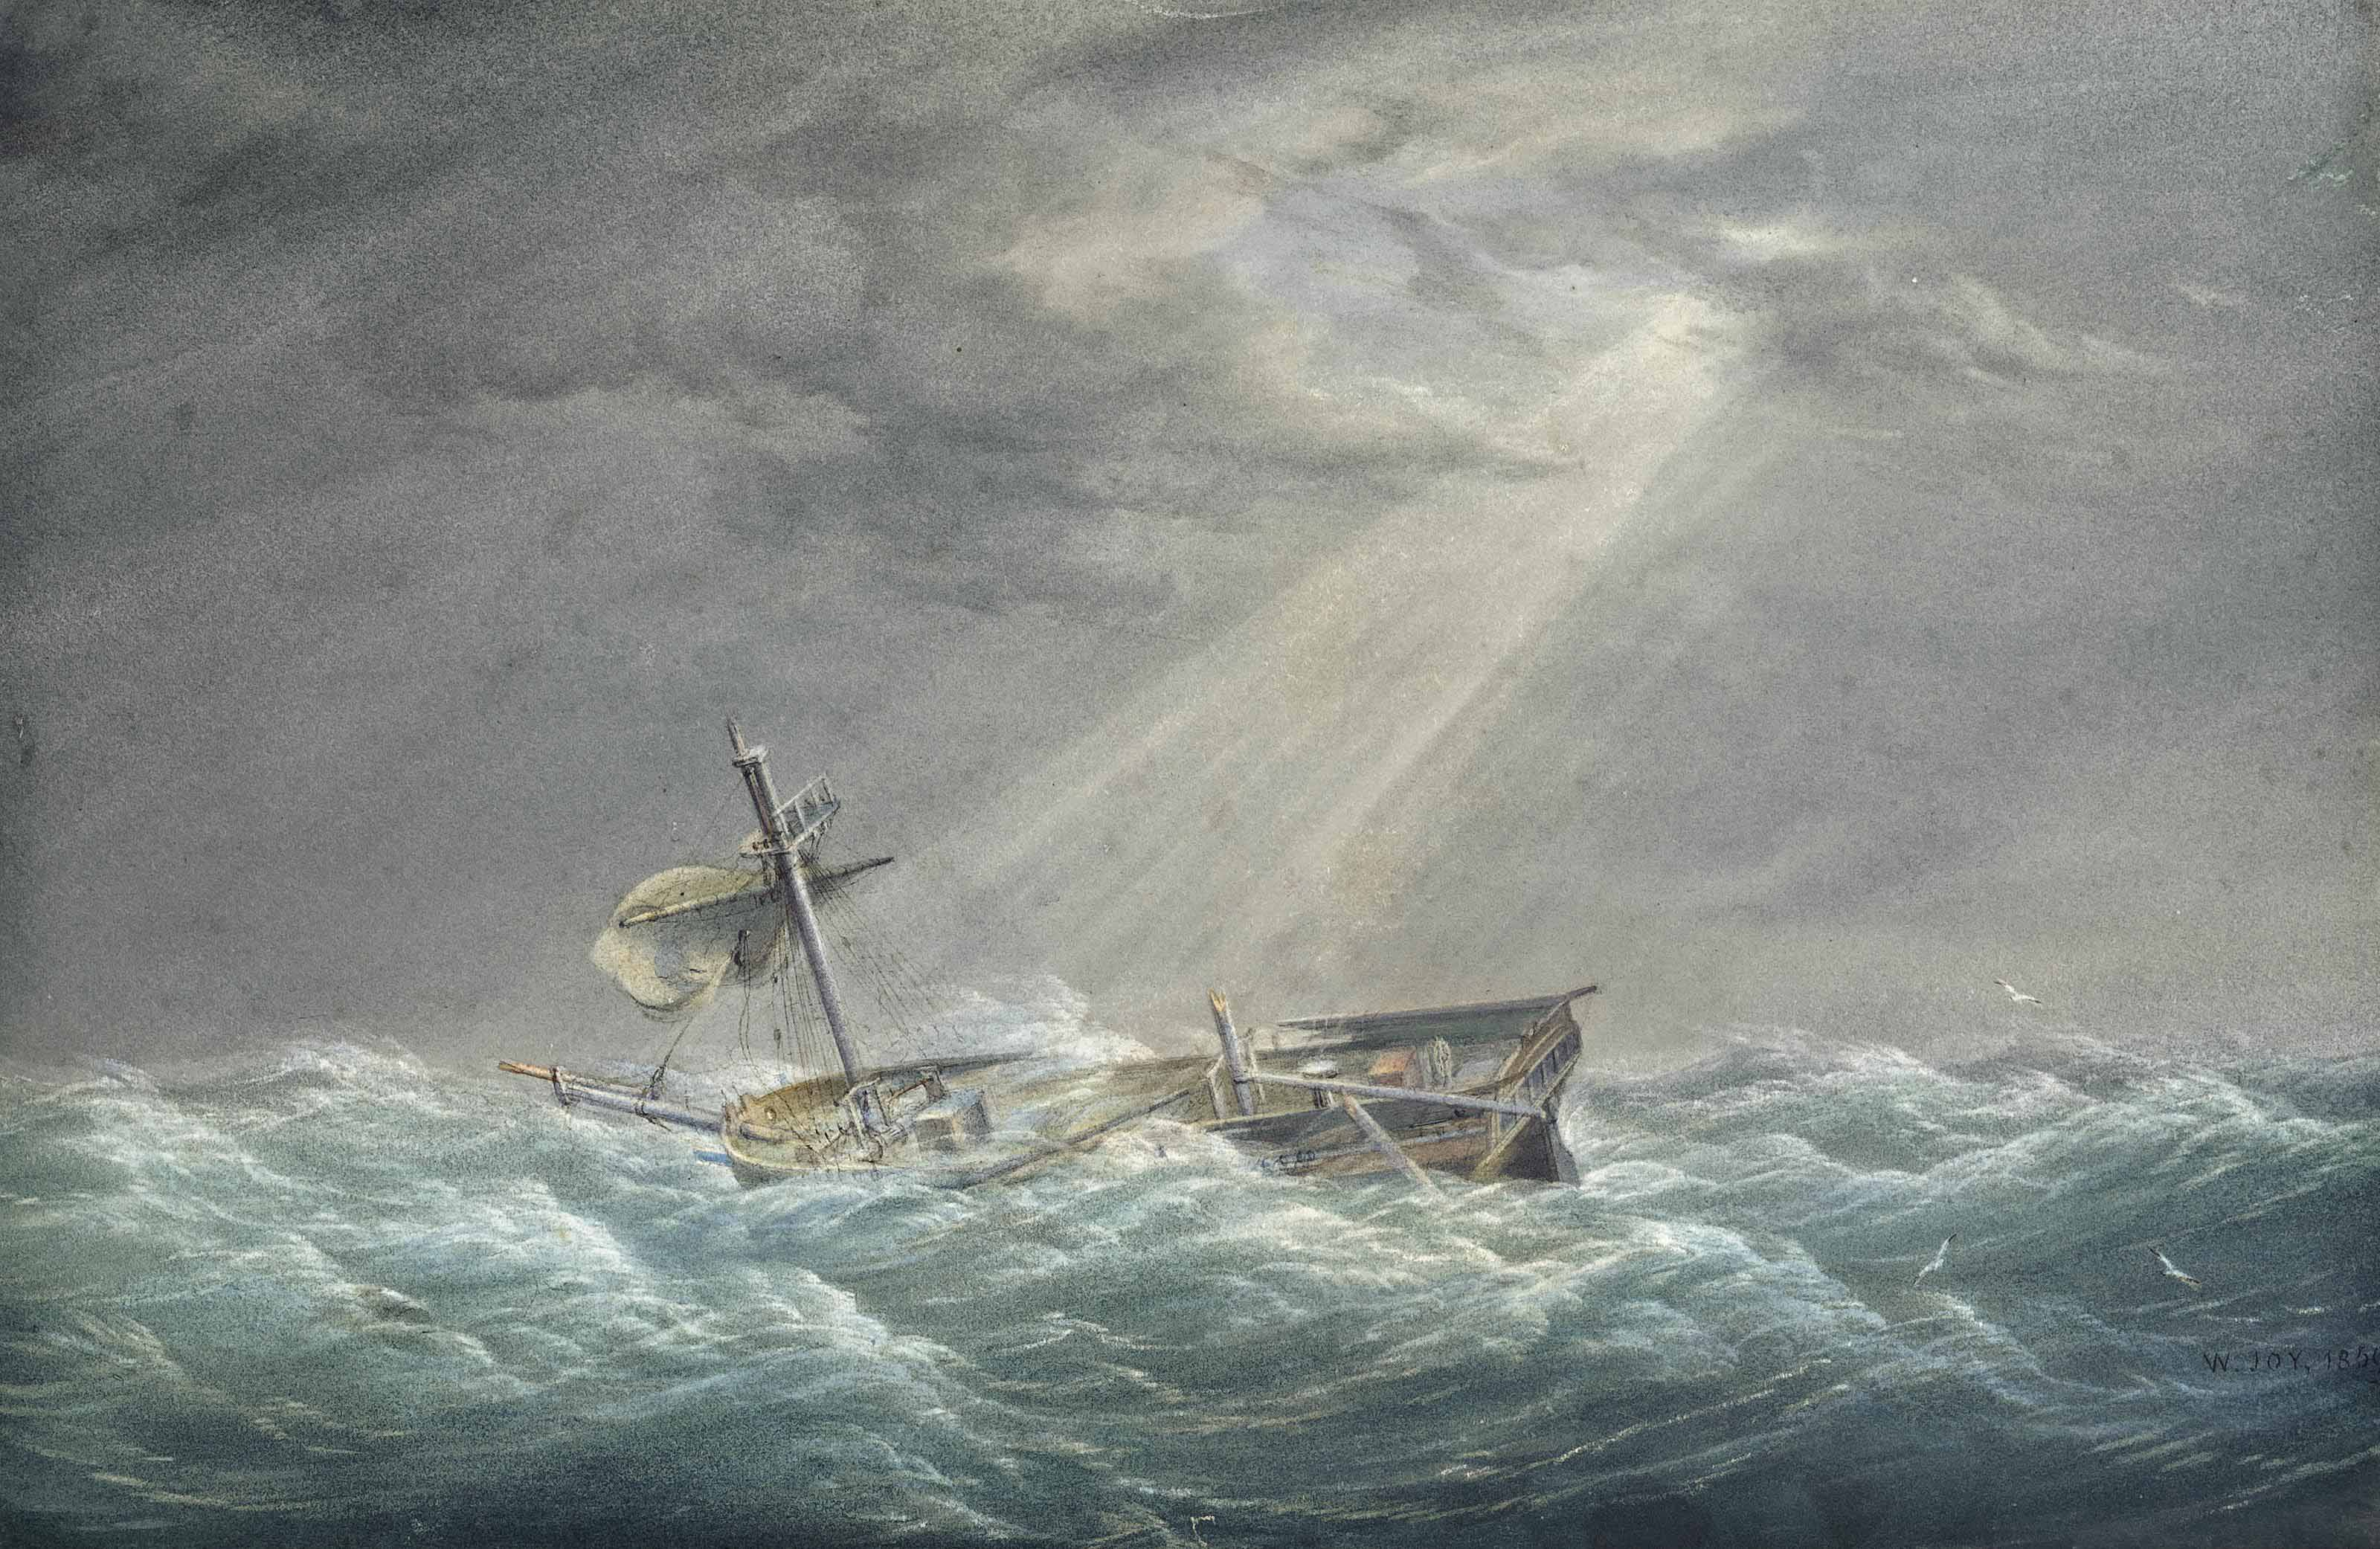 Shipwreck: The sun breaking through the clouds after the storm